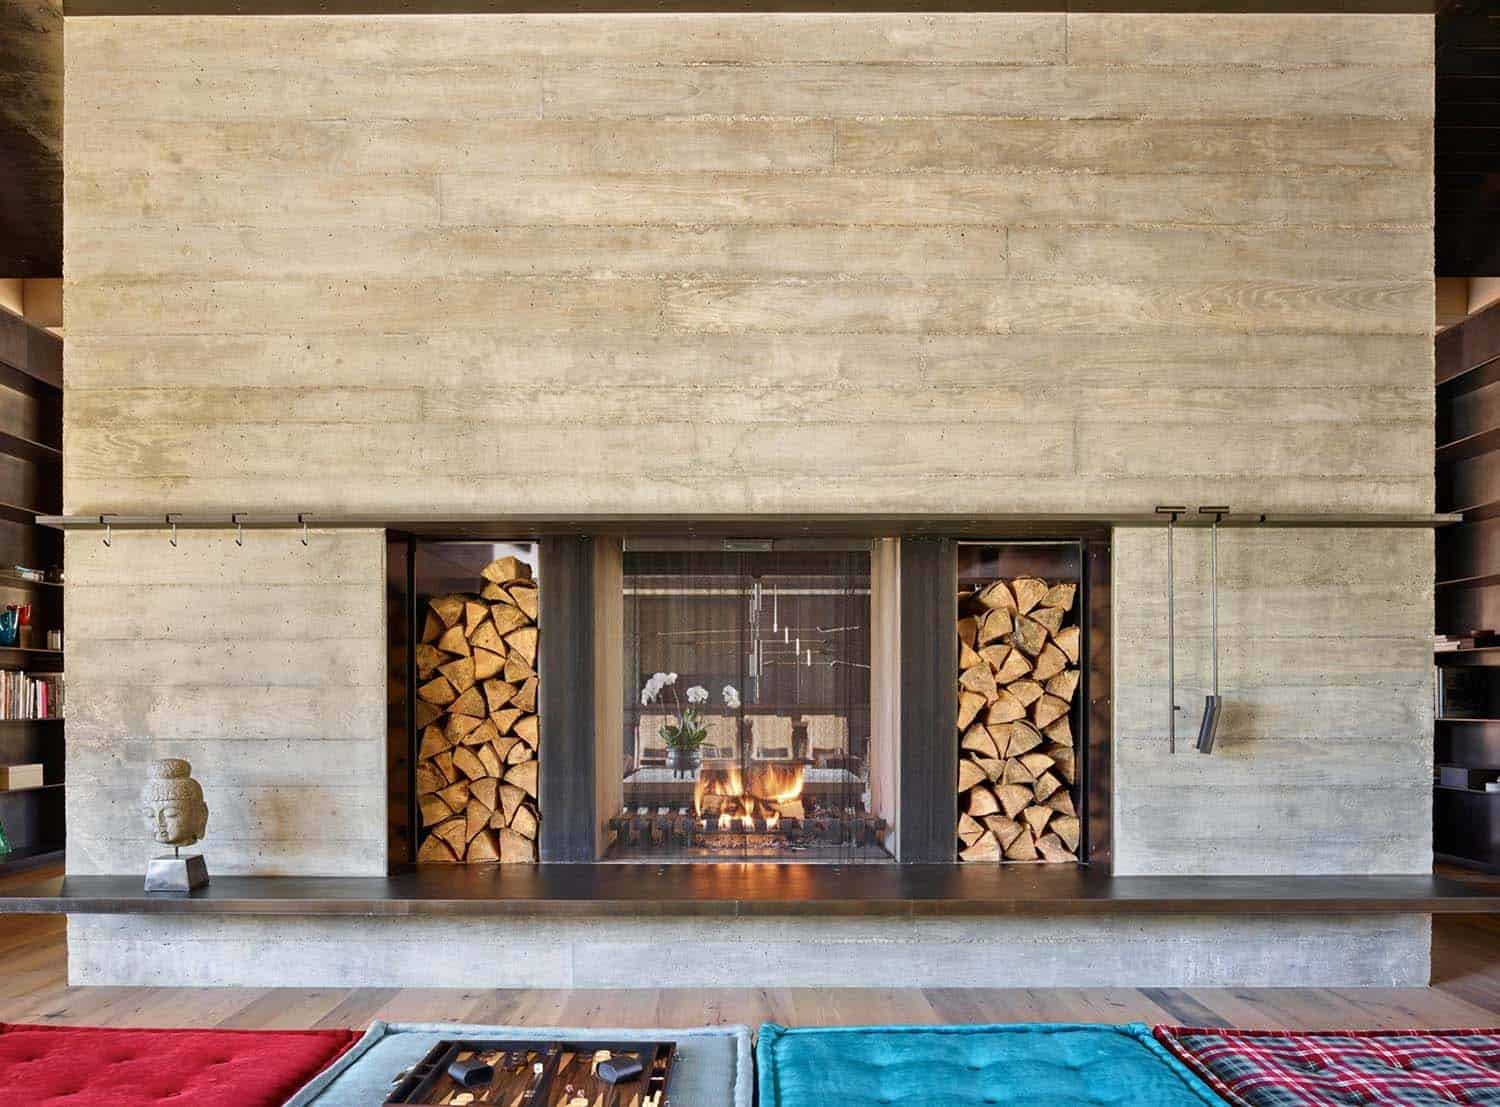 Mountain Ski Retreat-Olson Kundig Architects-14-1 Kindesign